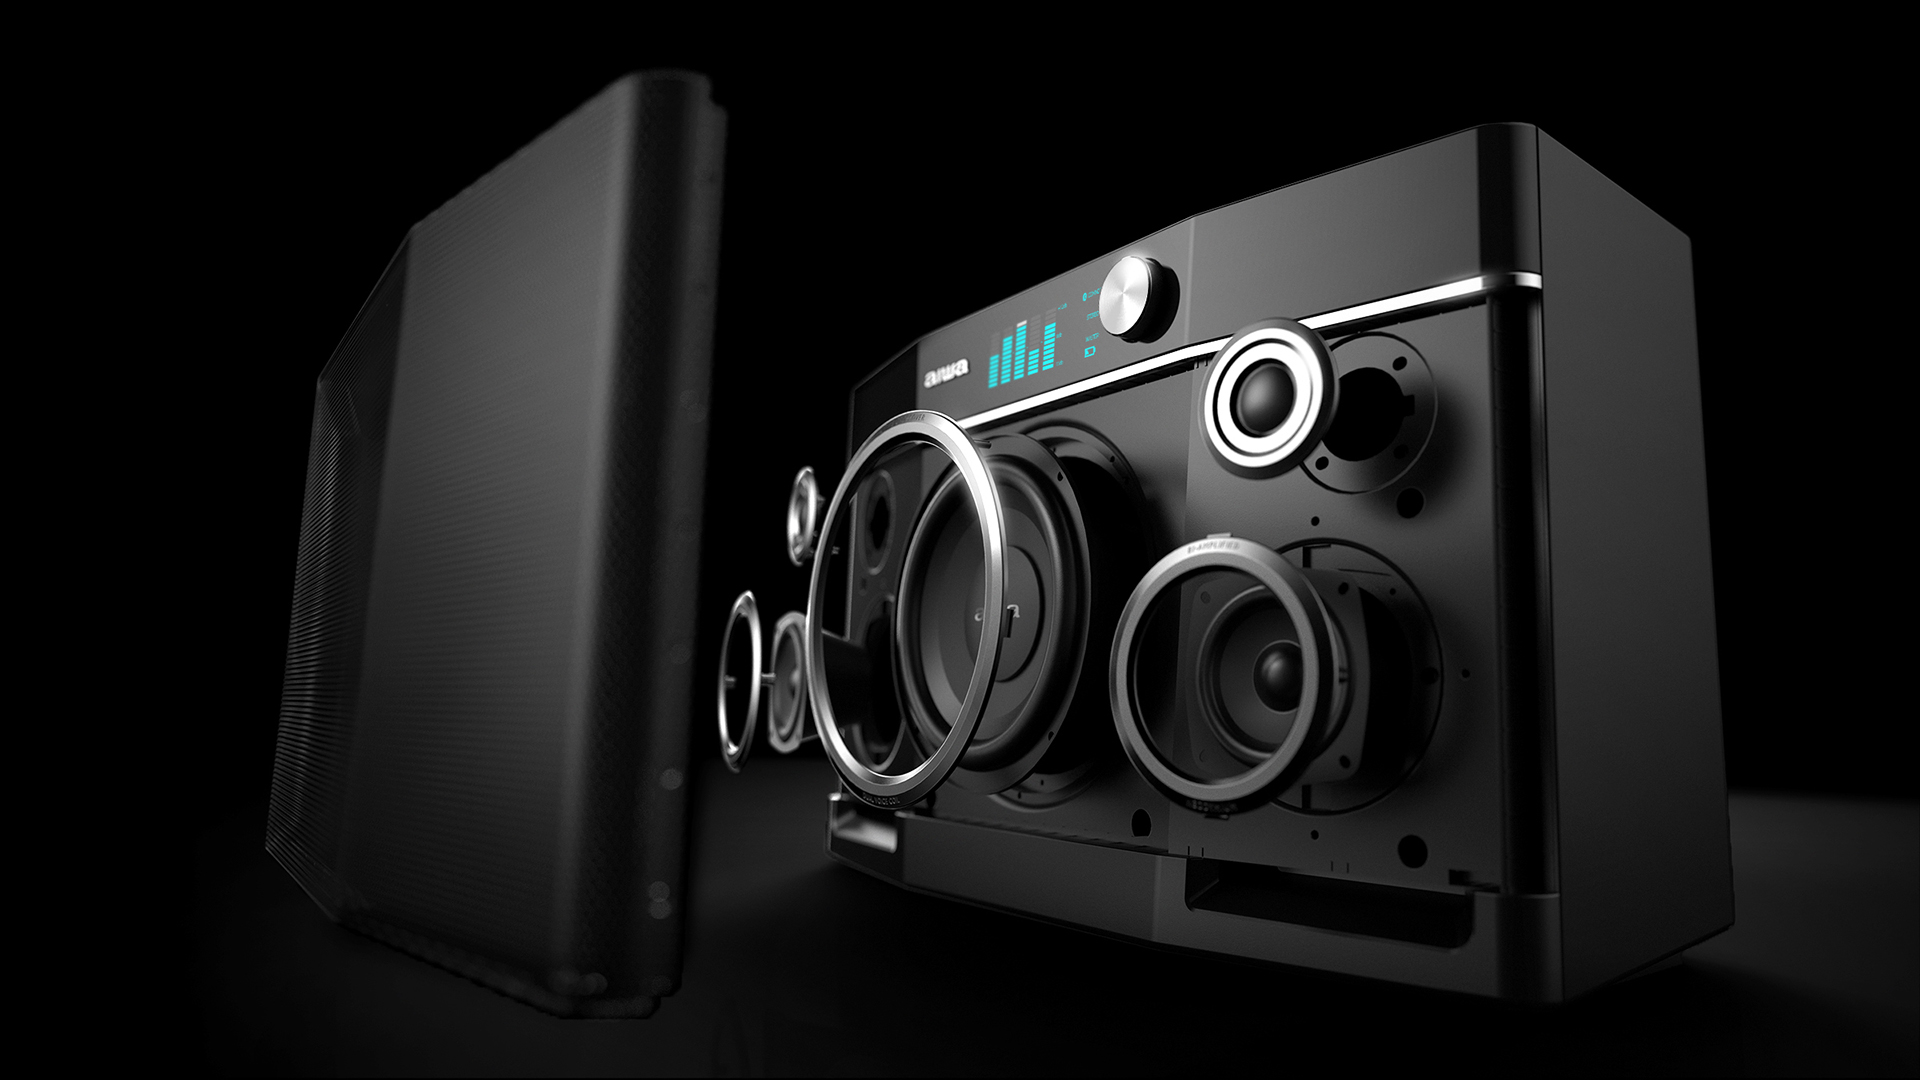 aiwa_industrial_product_design_process_029